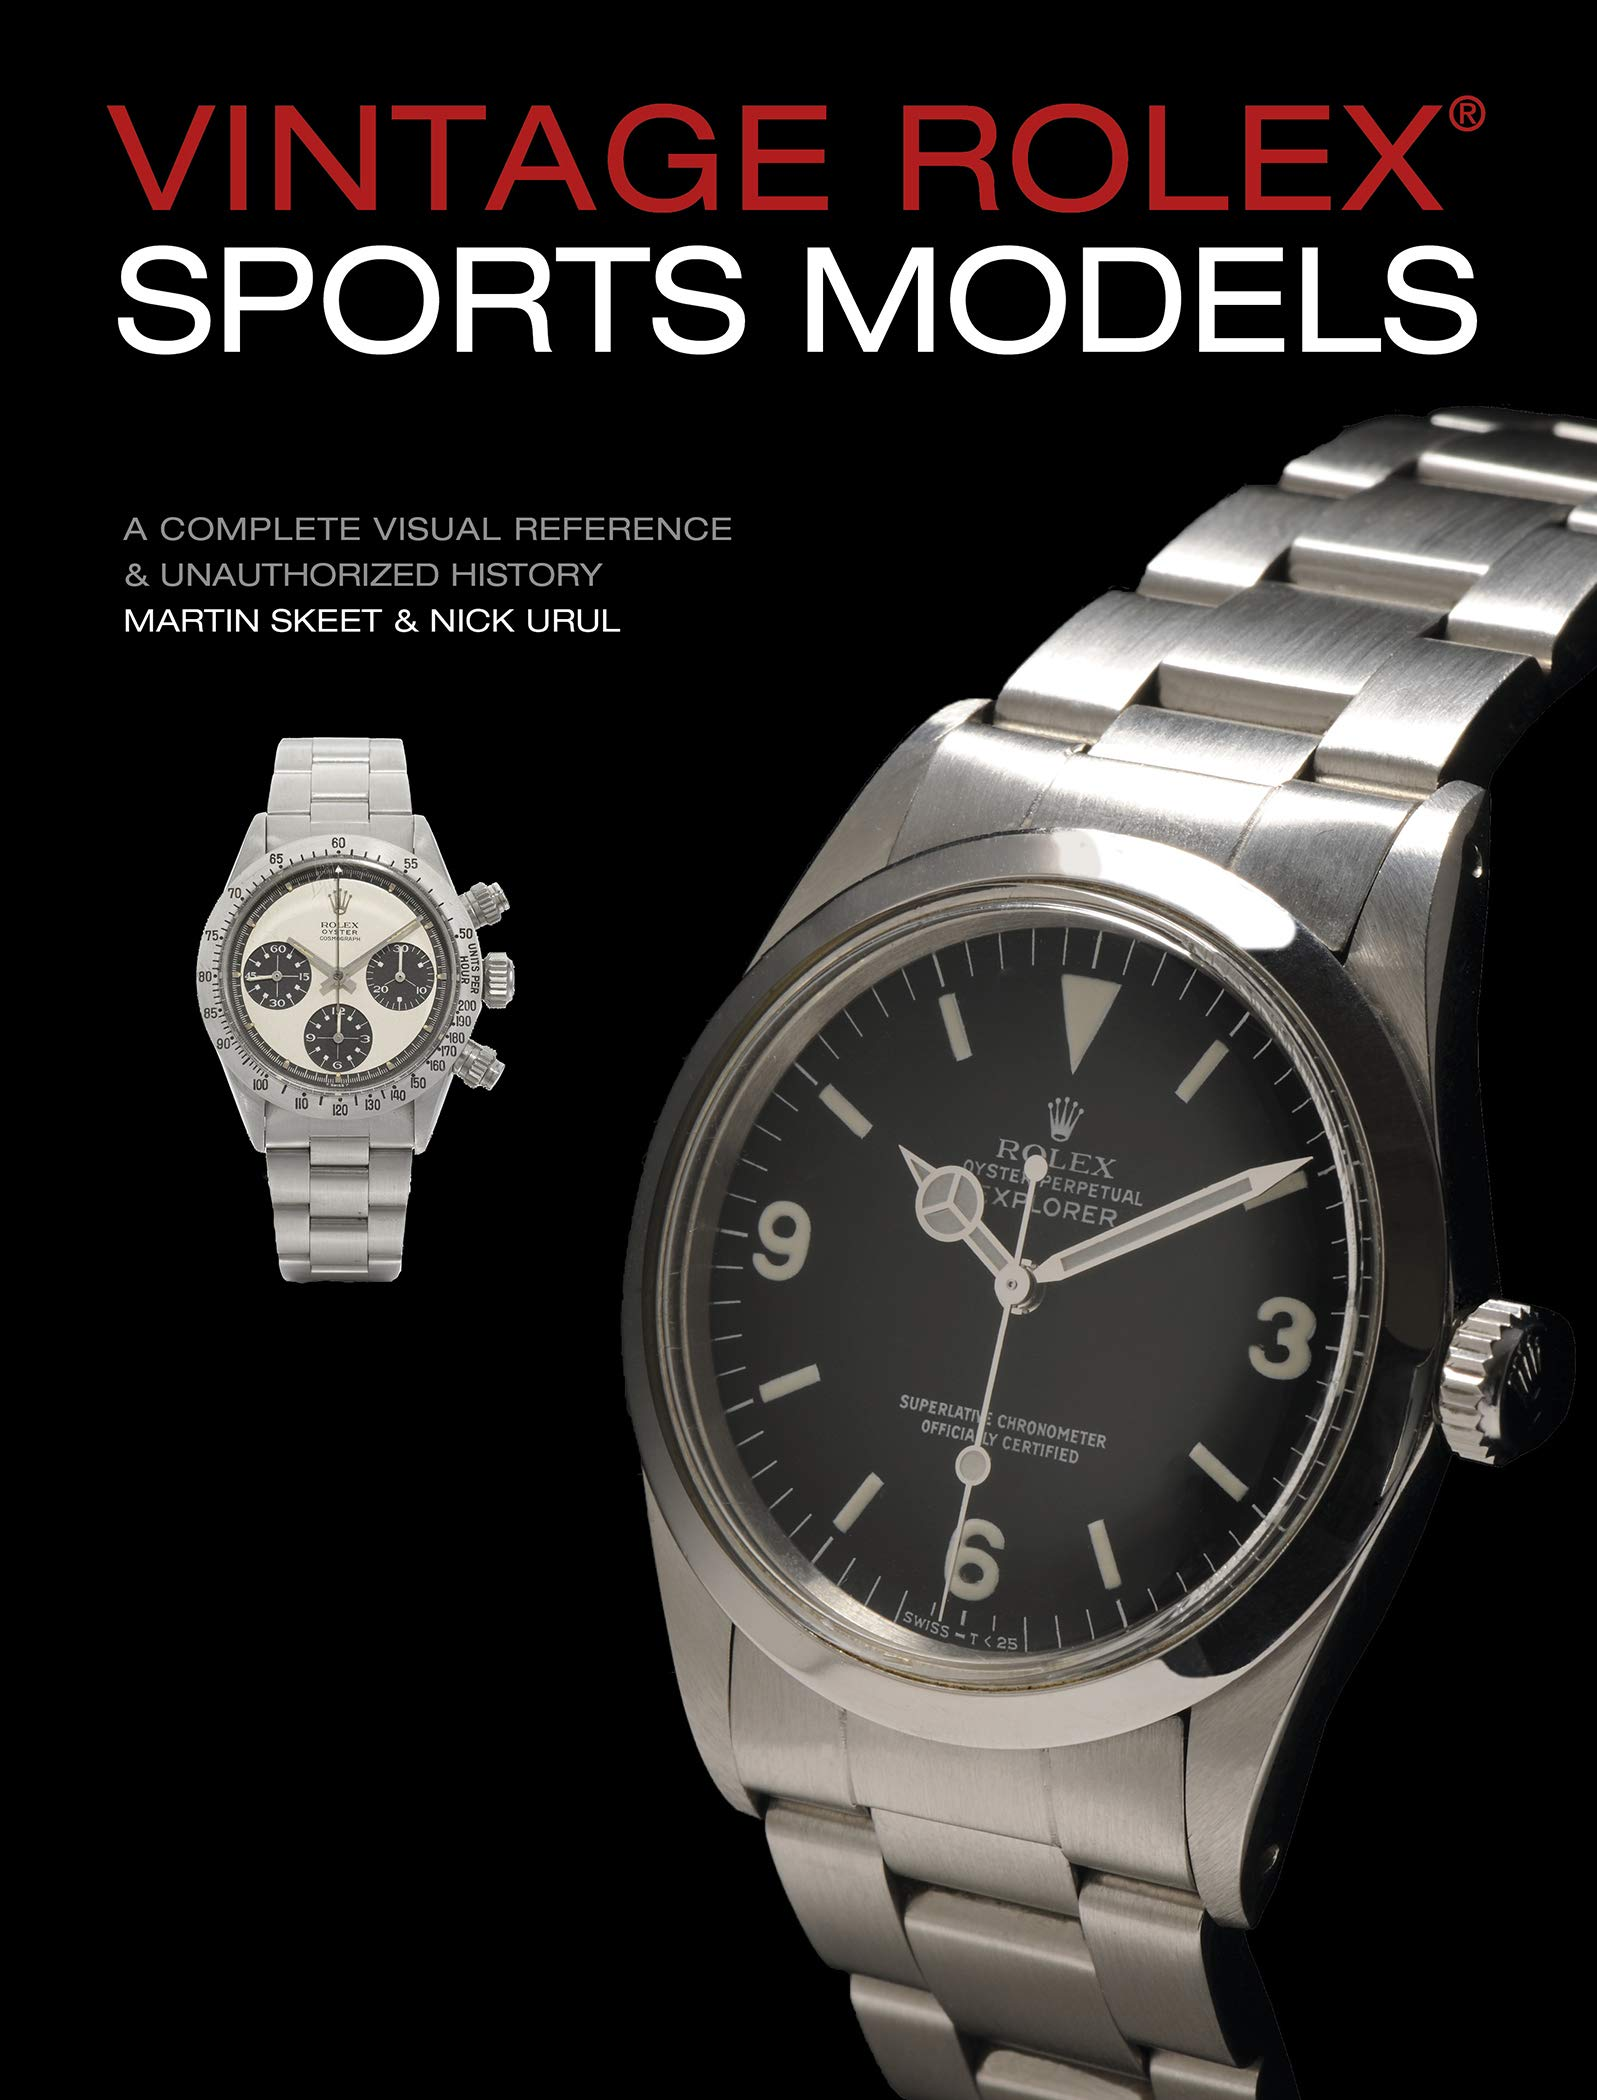 Vintage Rolex Sports Models 4th Edition  A Complete Visual Reference And Unauthorized History